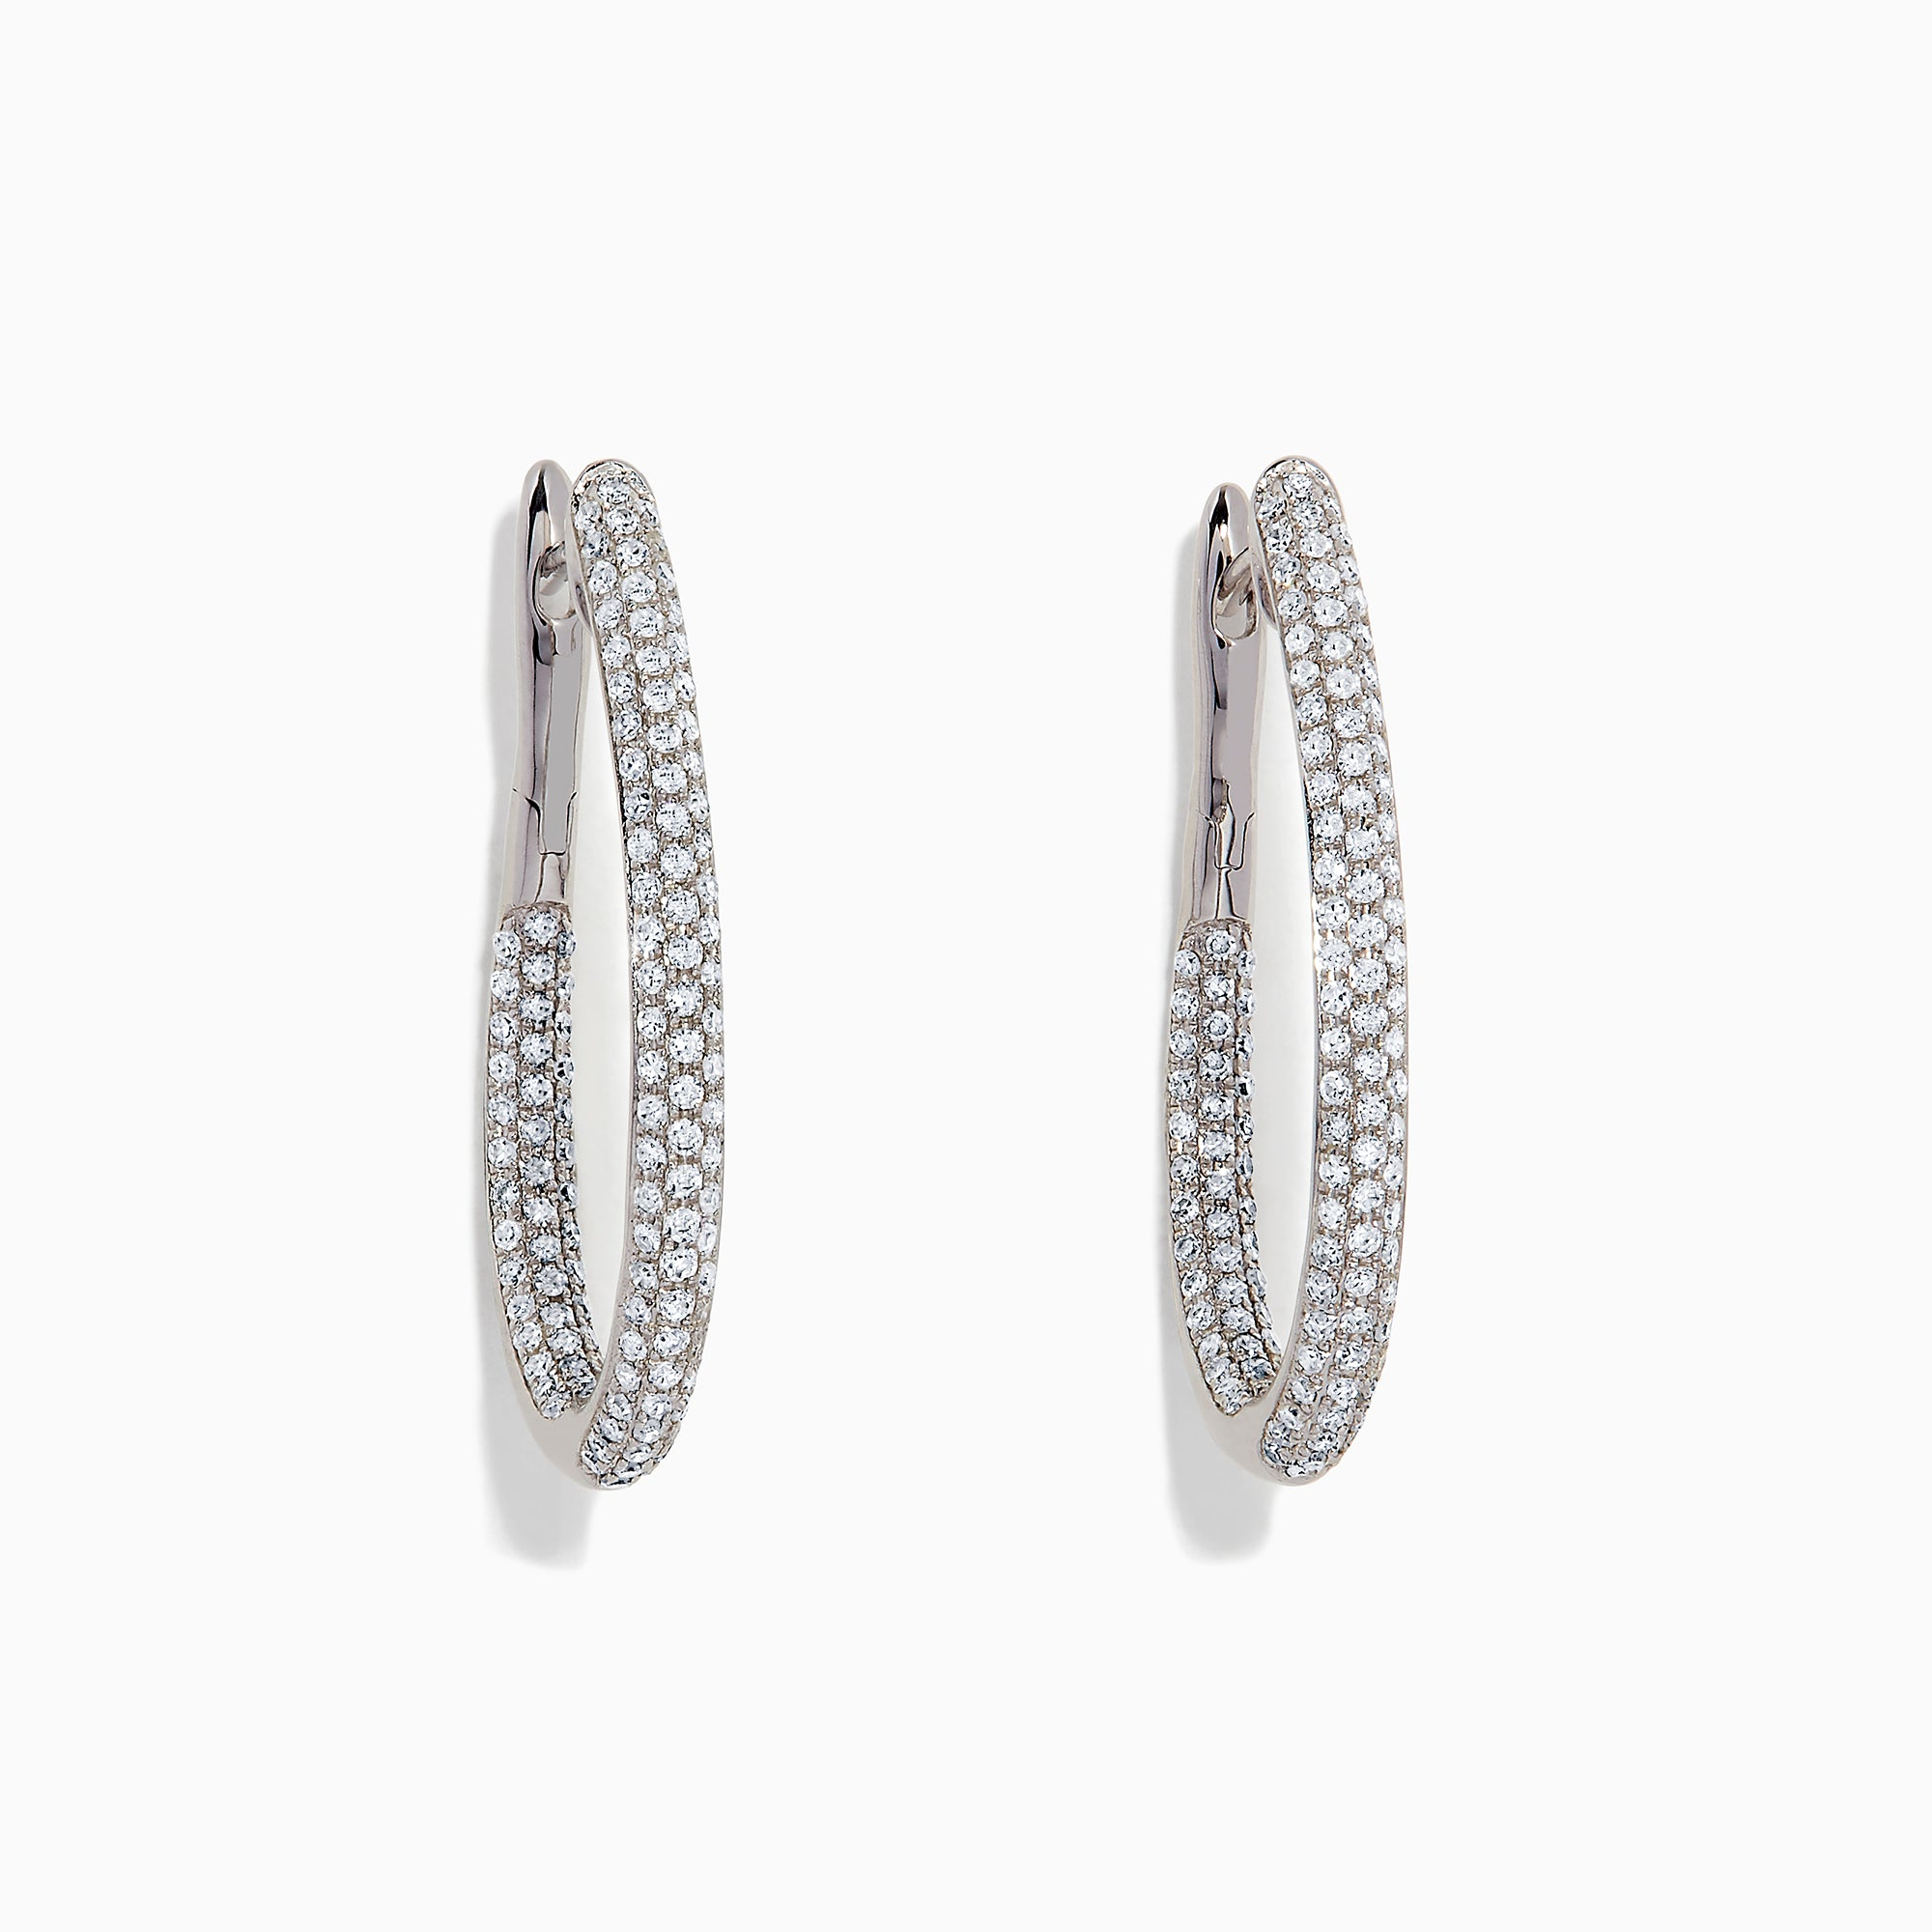 Effy 14K White Gold Diamond Hoop Earrings, 1.06 TCW